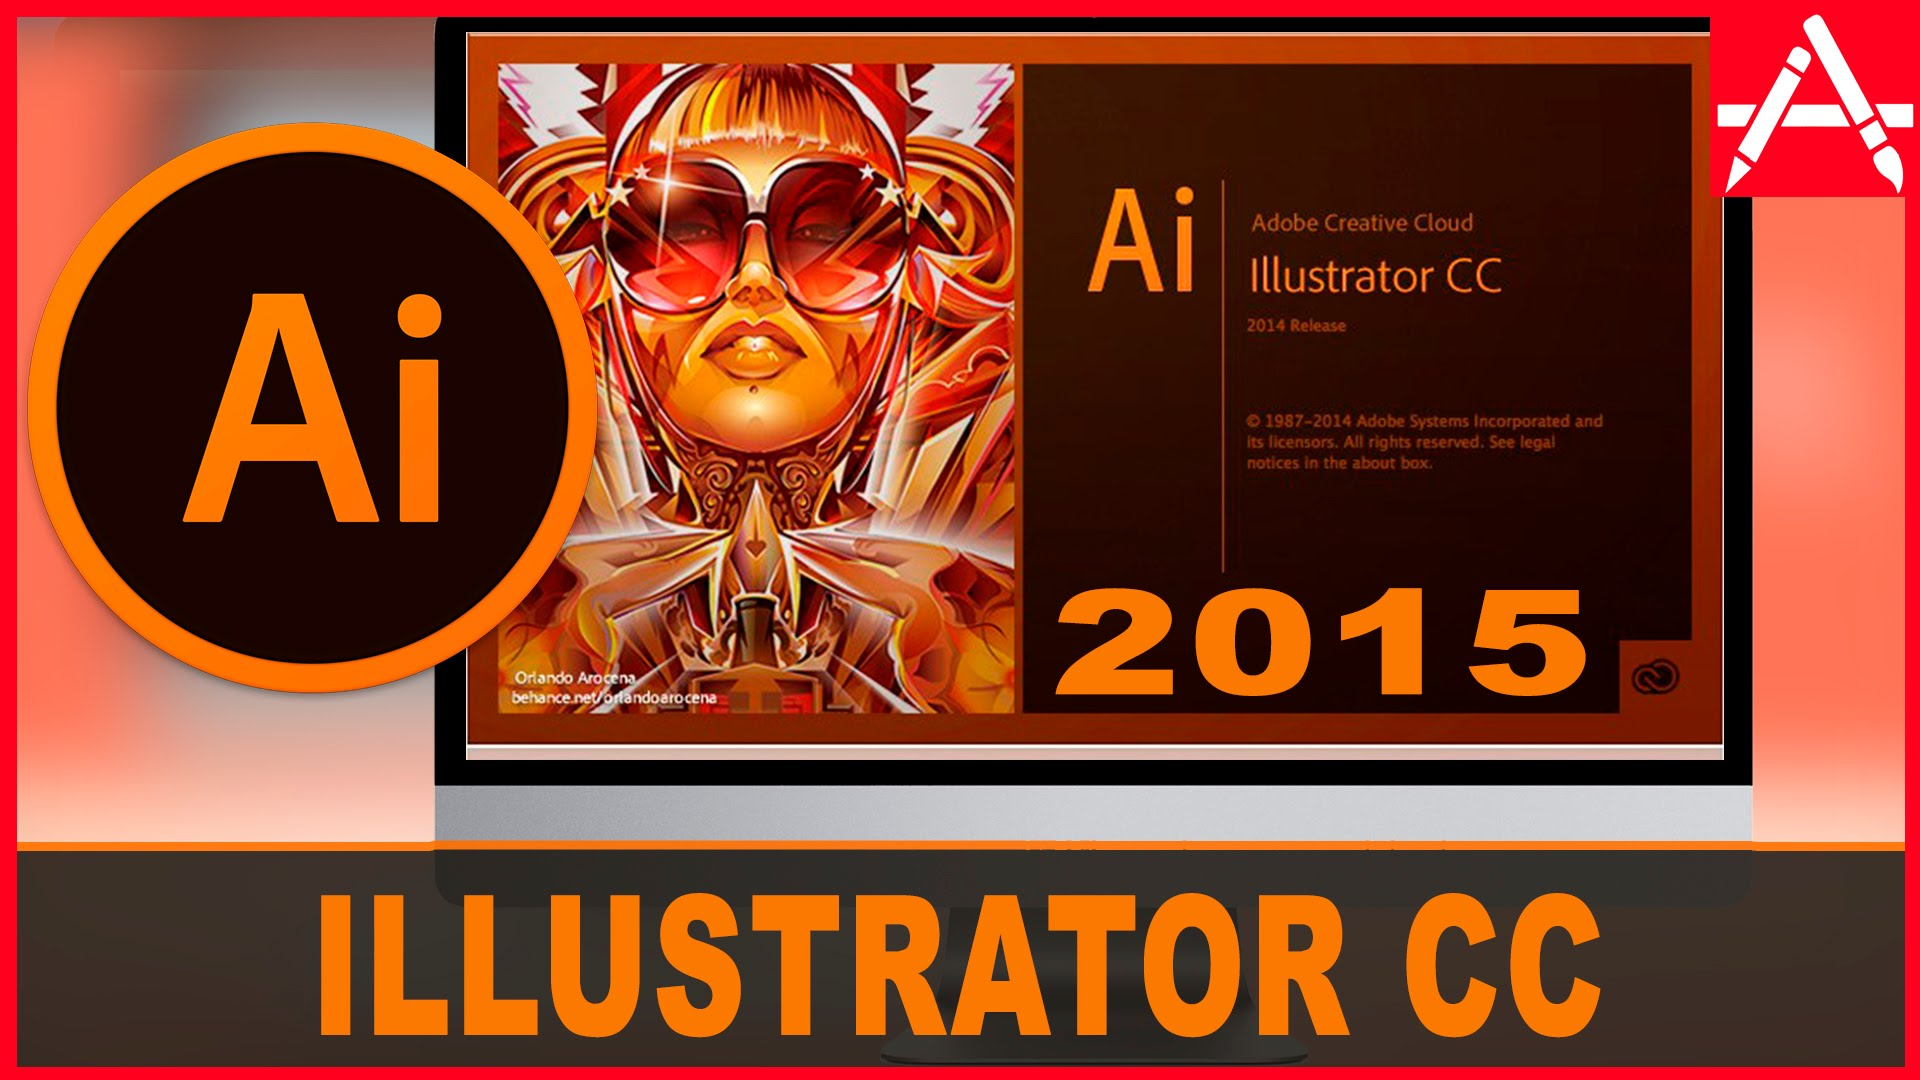 Download phần mềm Adobe Illustrator CC 2015 32bit & 64bit Full Crack